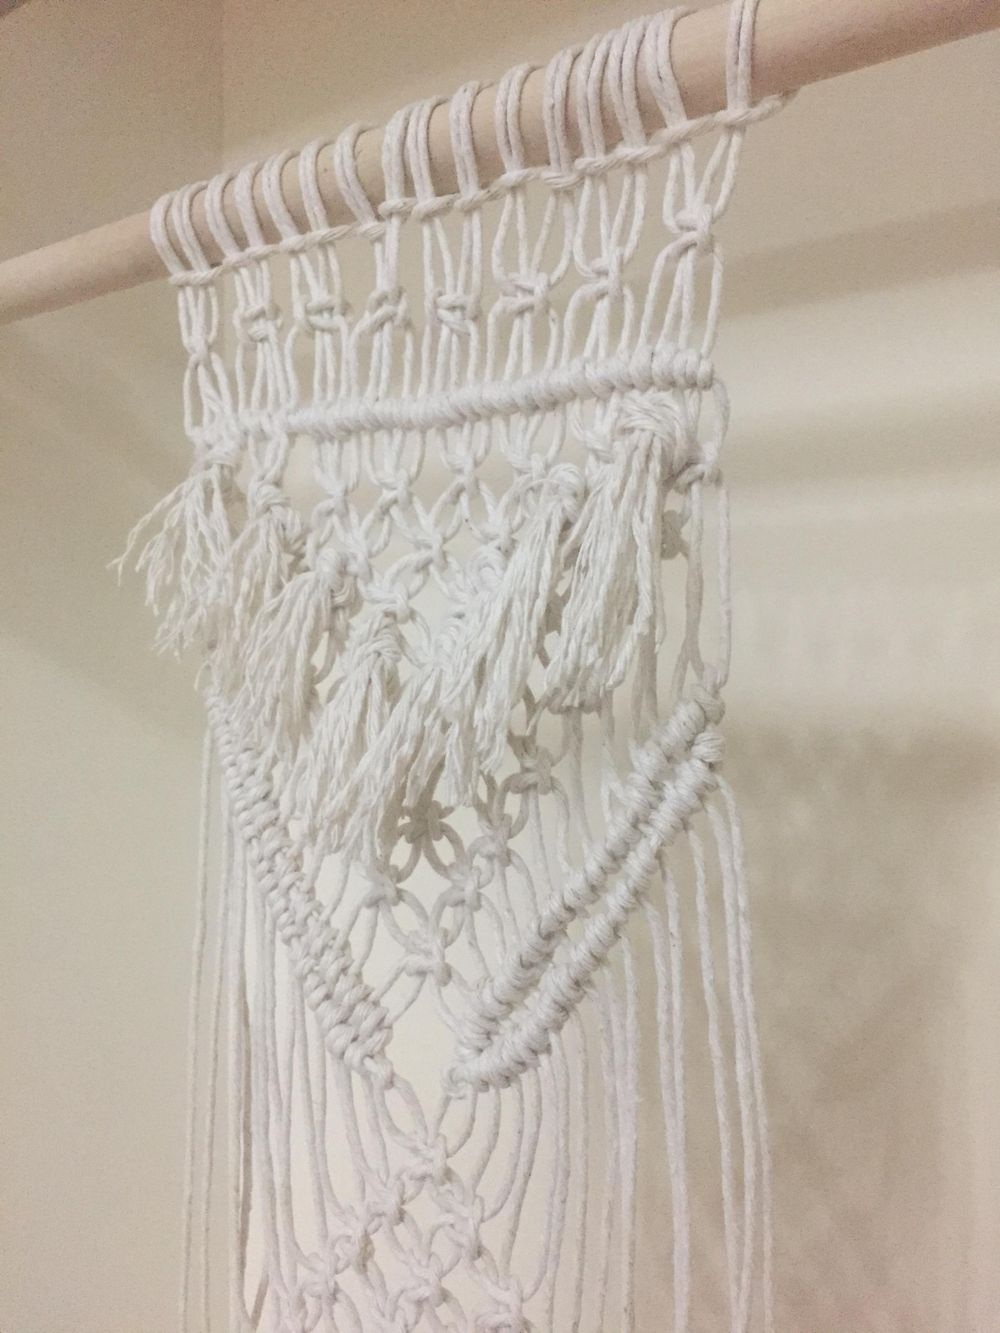 Macrame project with fringe!  - image 2 - student project